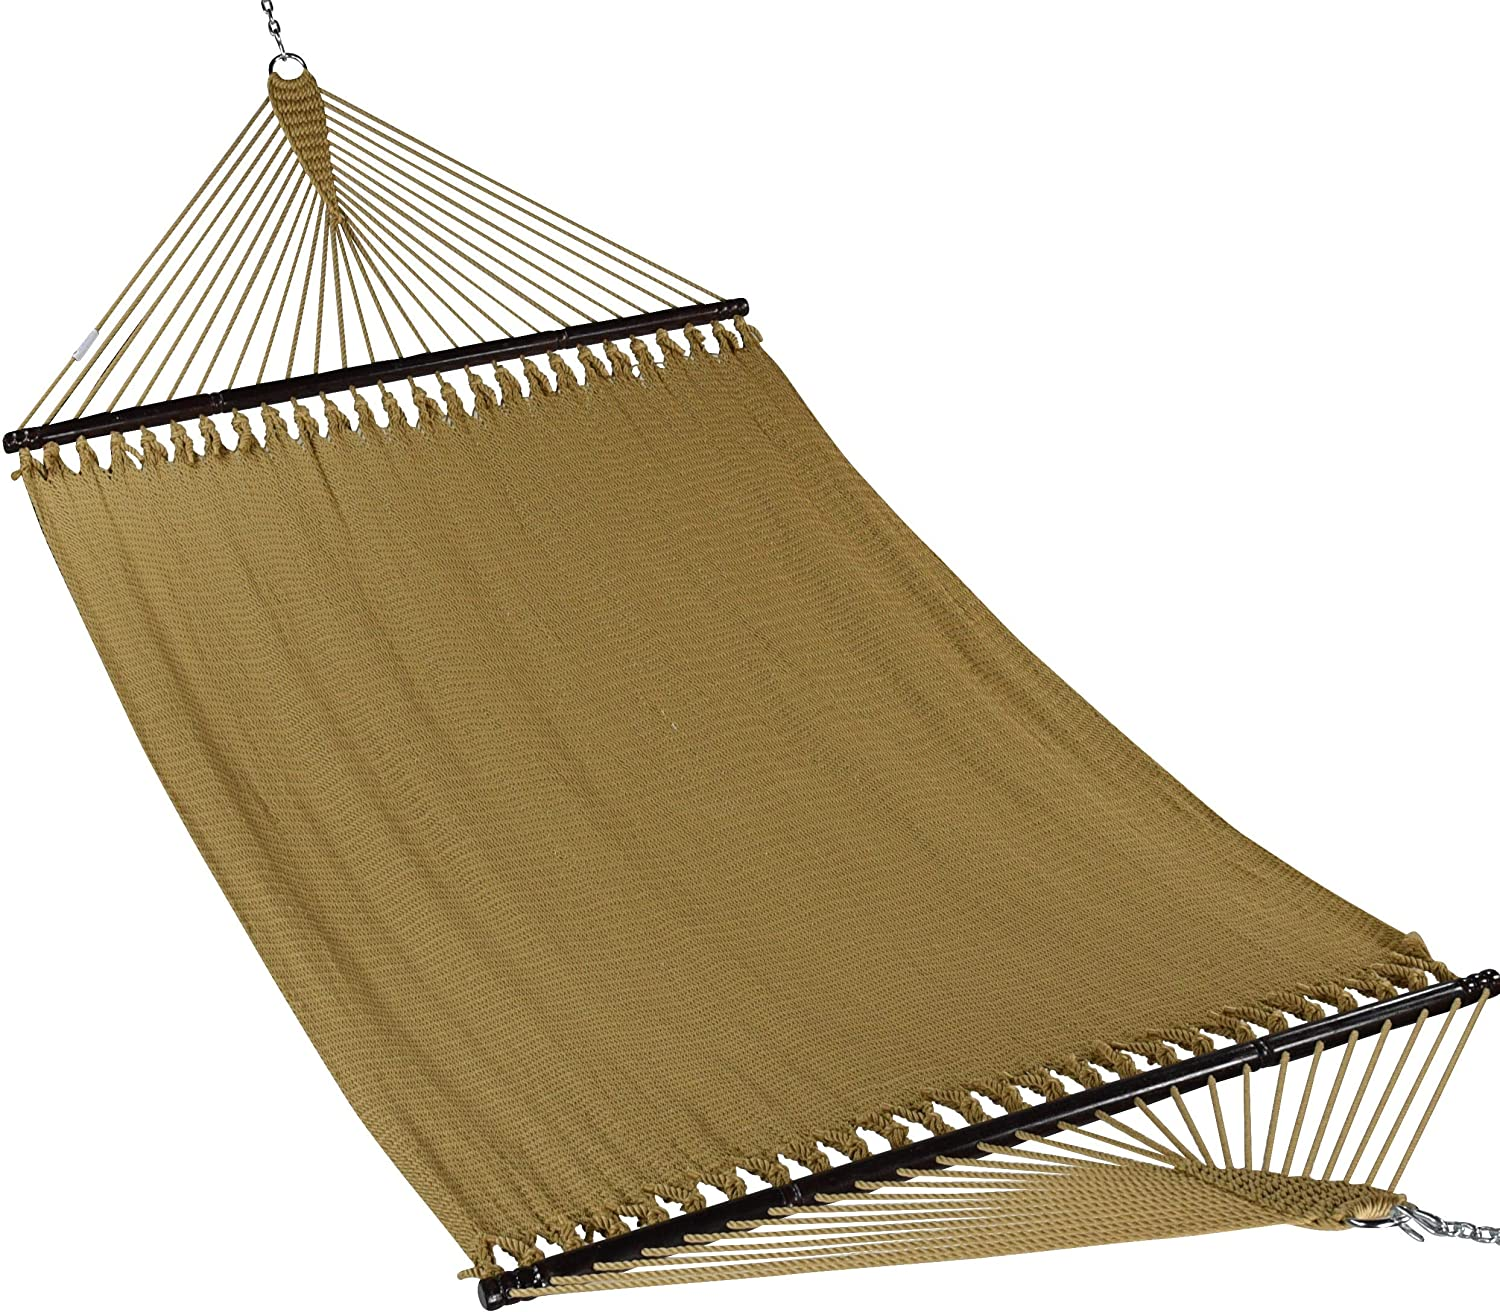 "Caribbean Hammocks 55"" Wide Jumbo Caribbean Hammock - Tan - 600 lb Weight Capacity"